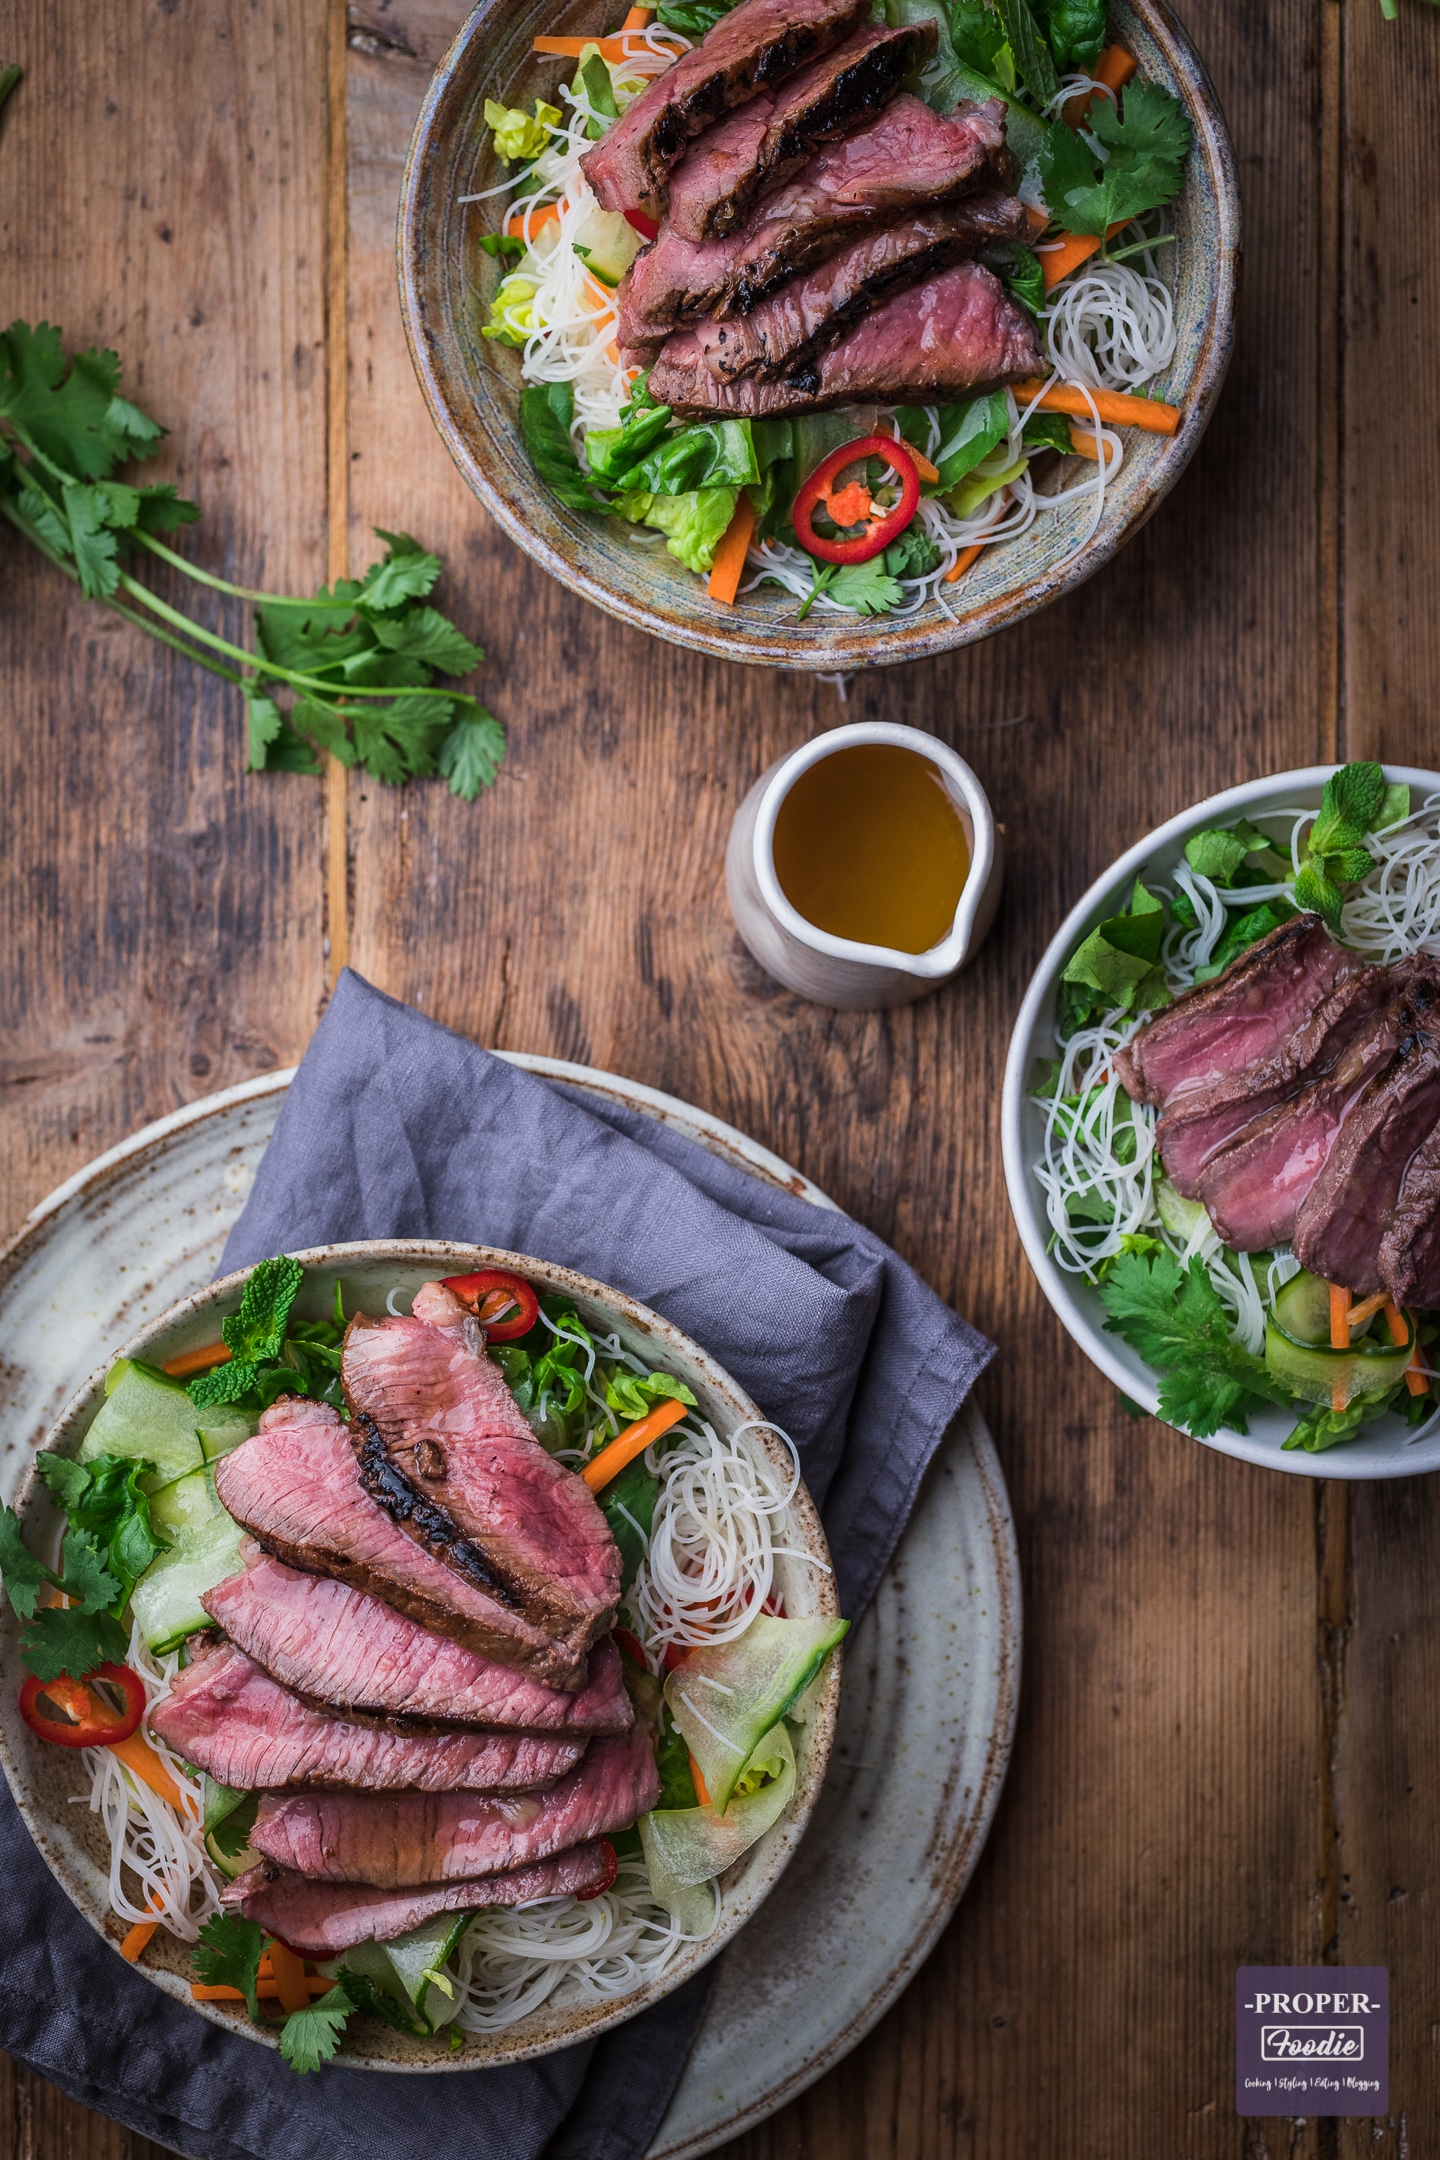 Vietnamese style noodle salad recipe wth sliced steak served up in 2 bowls